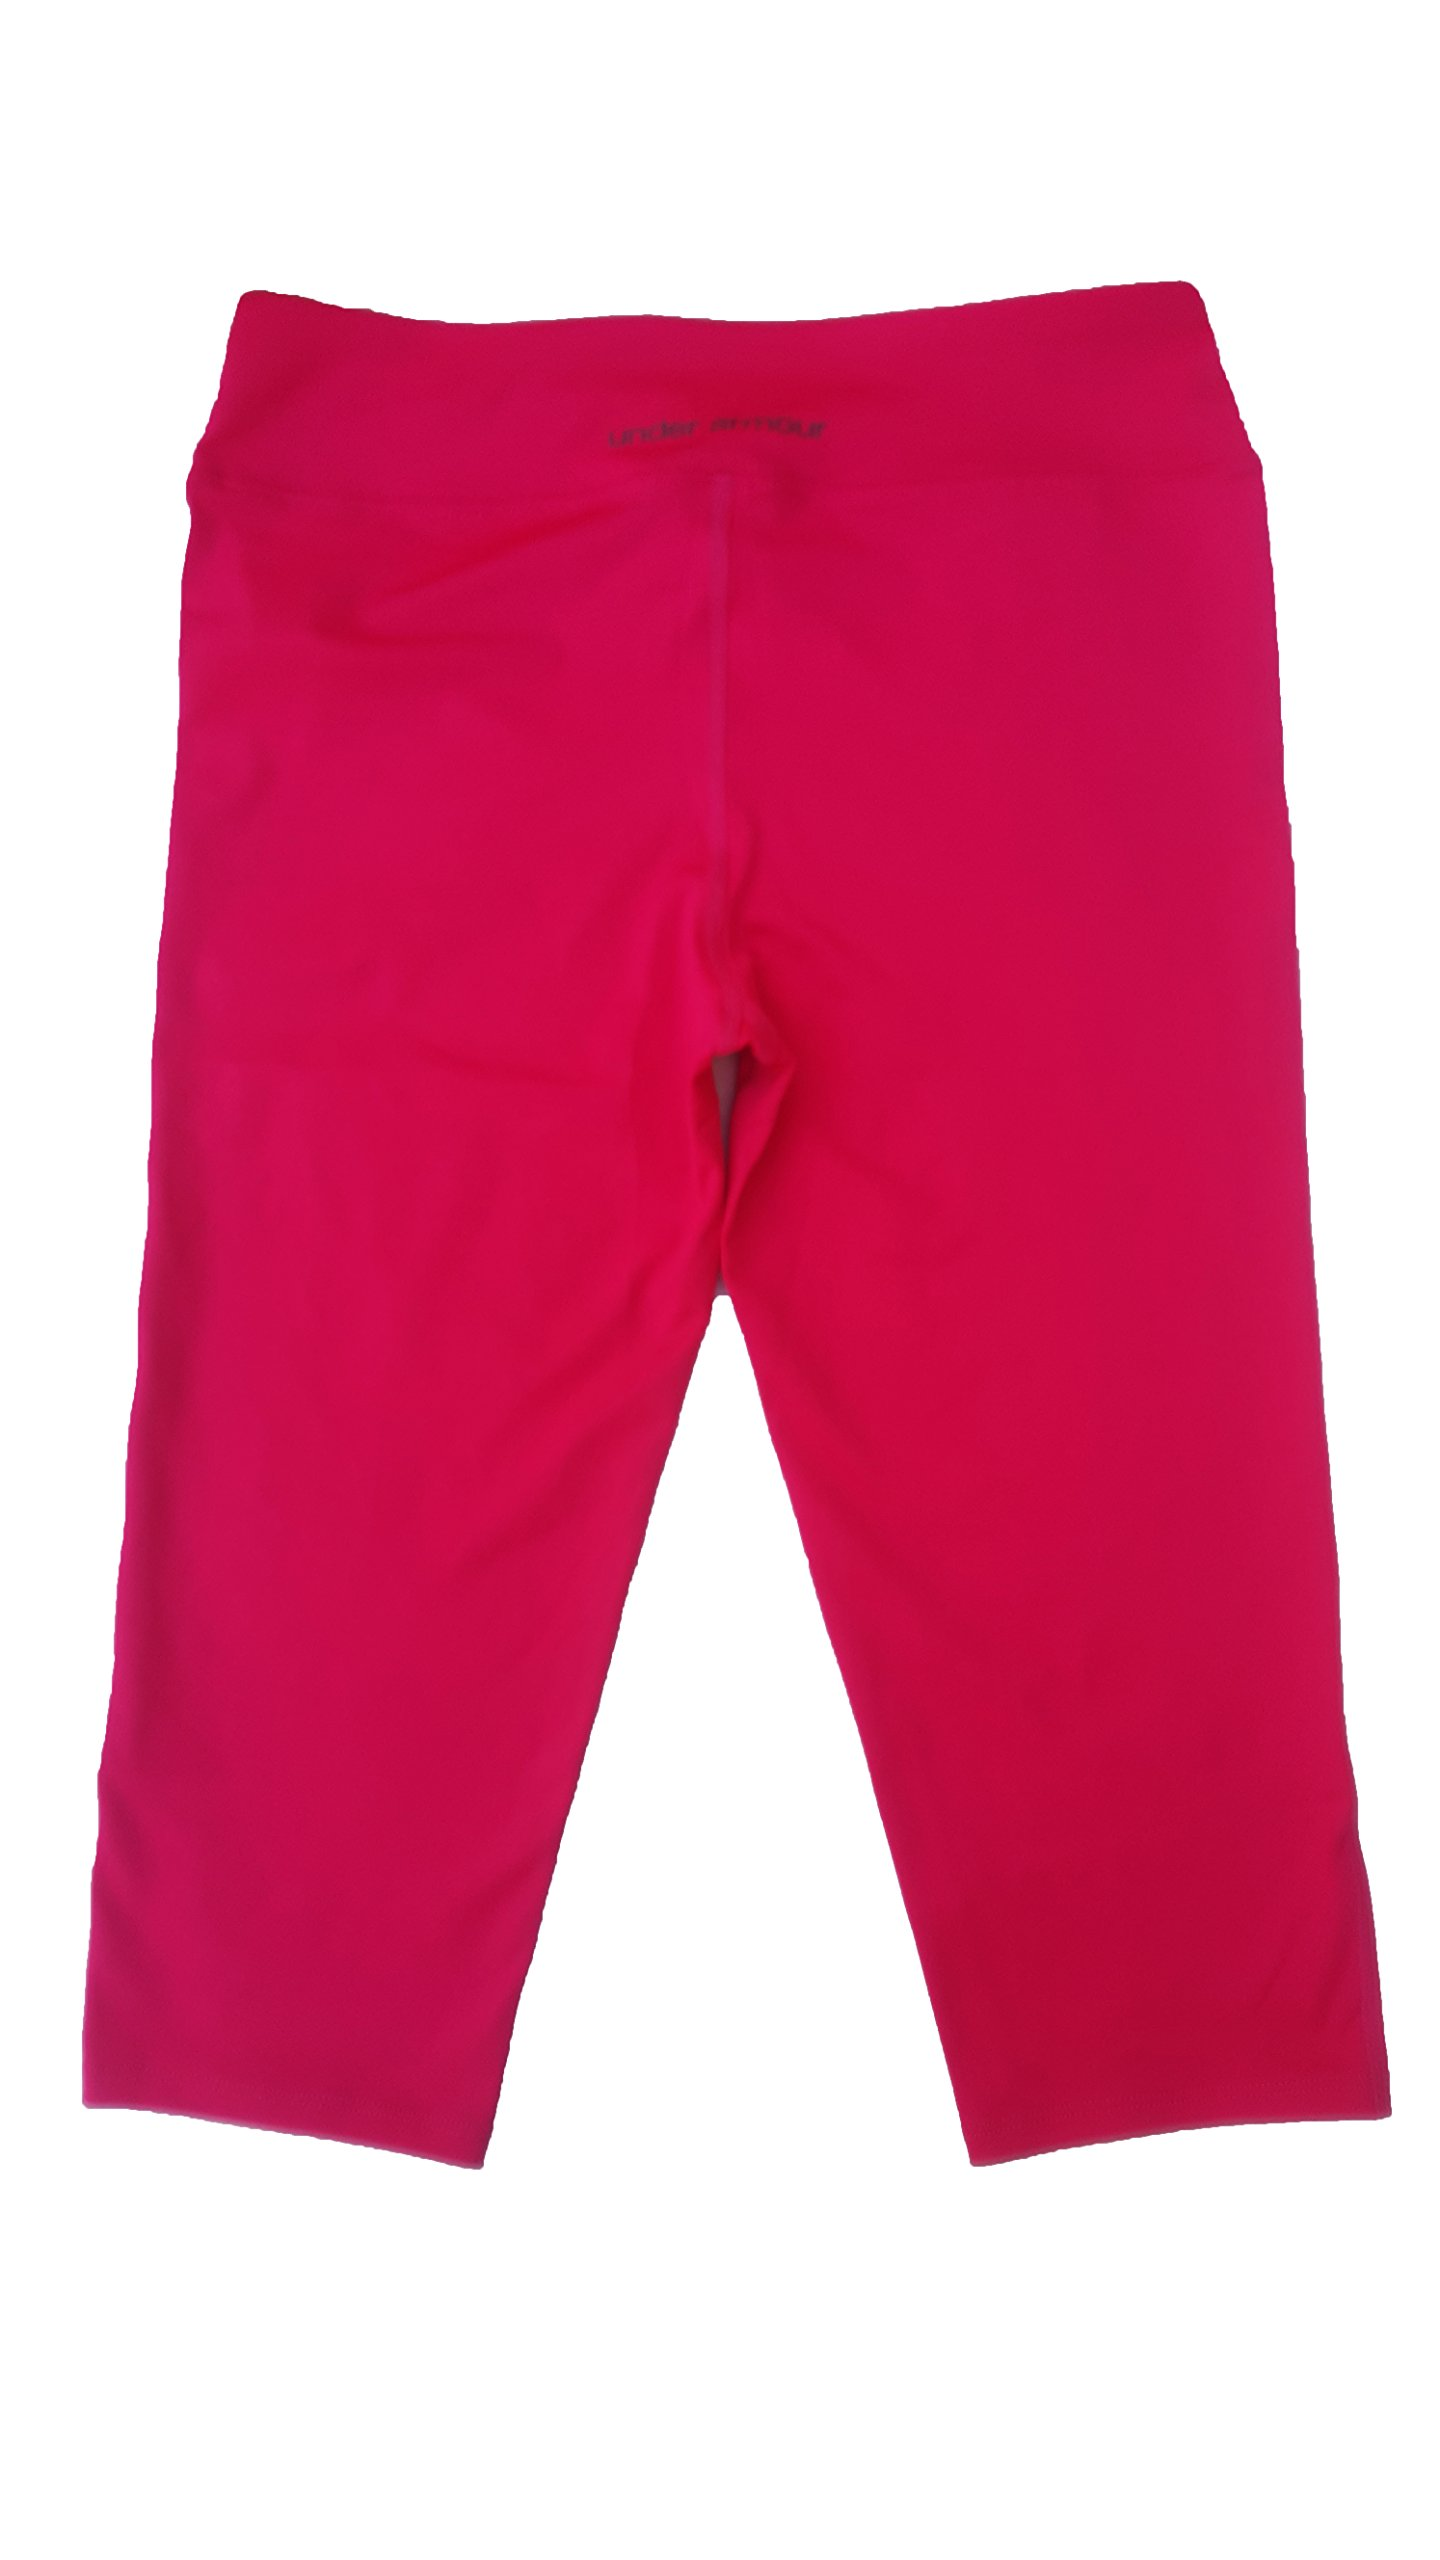 Under Armour Girls Capri Leggings (Large, Red) by Under Armour (Image #1)